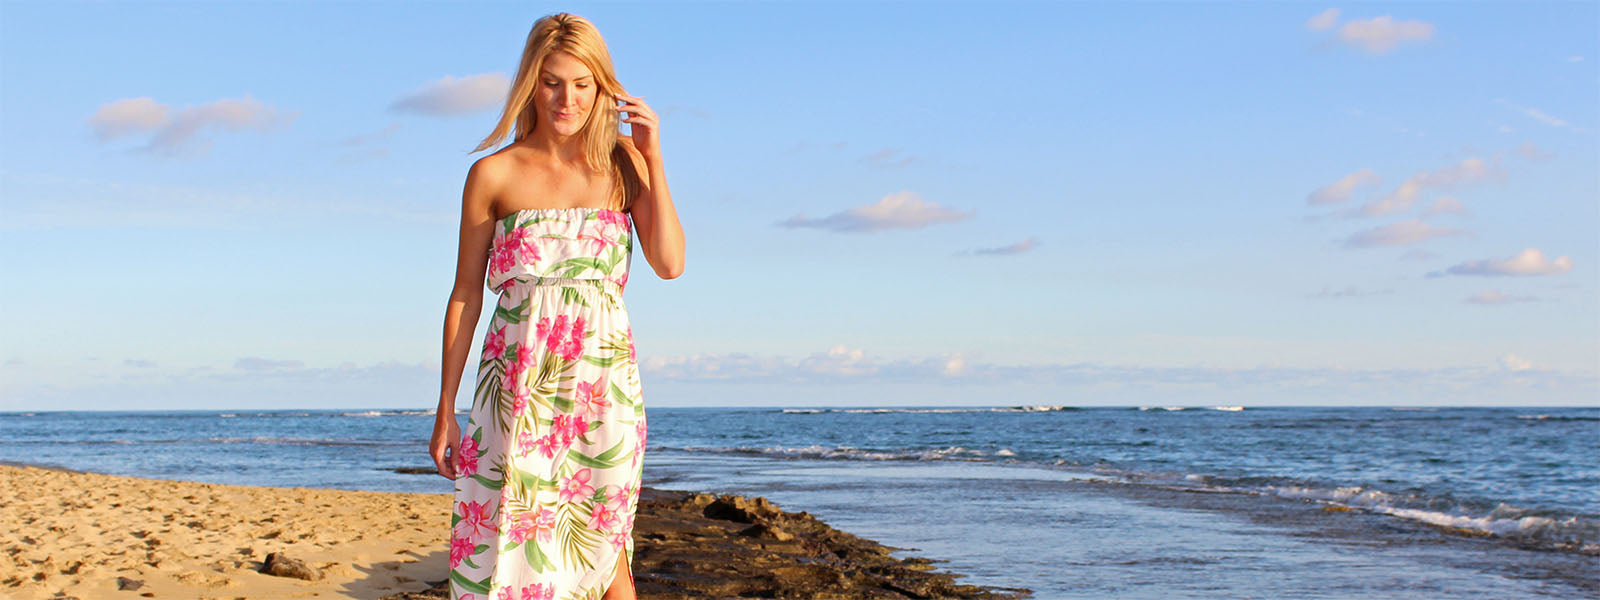 strapless full-length Hawaiian dresses with elastic waist and ruffle bodice overlay